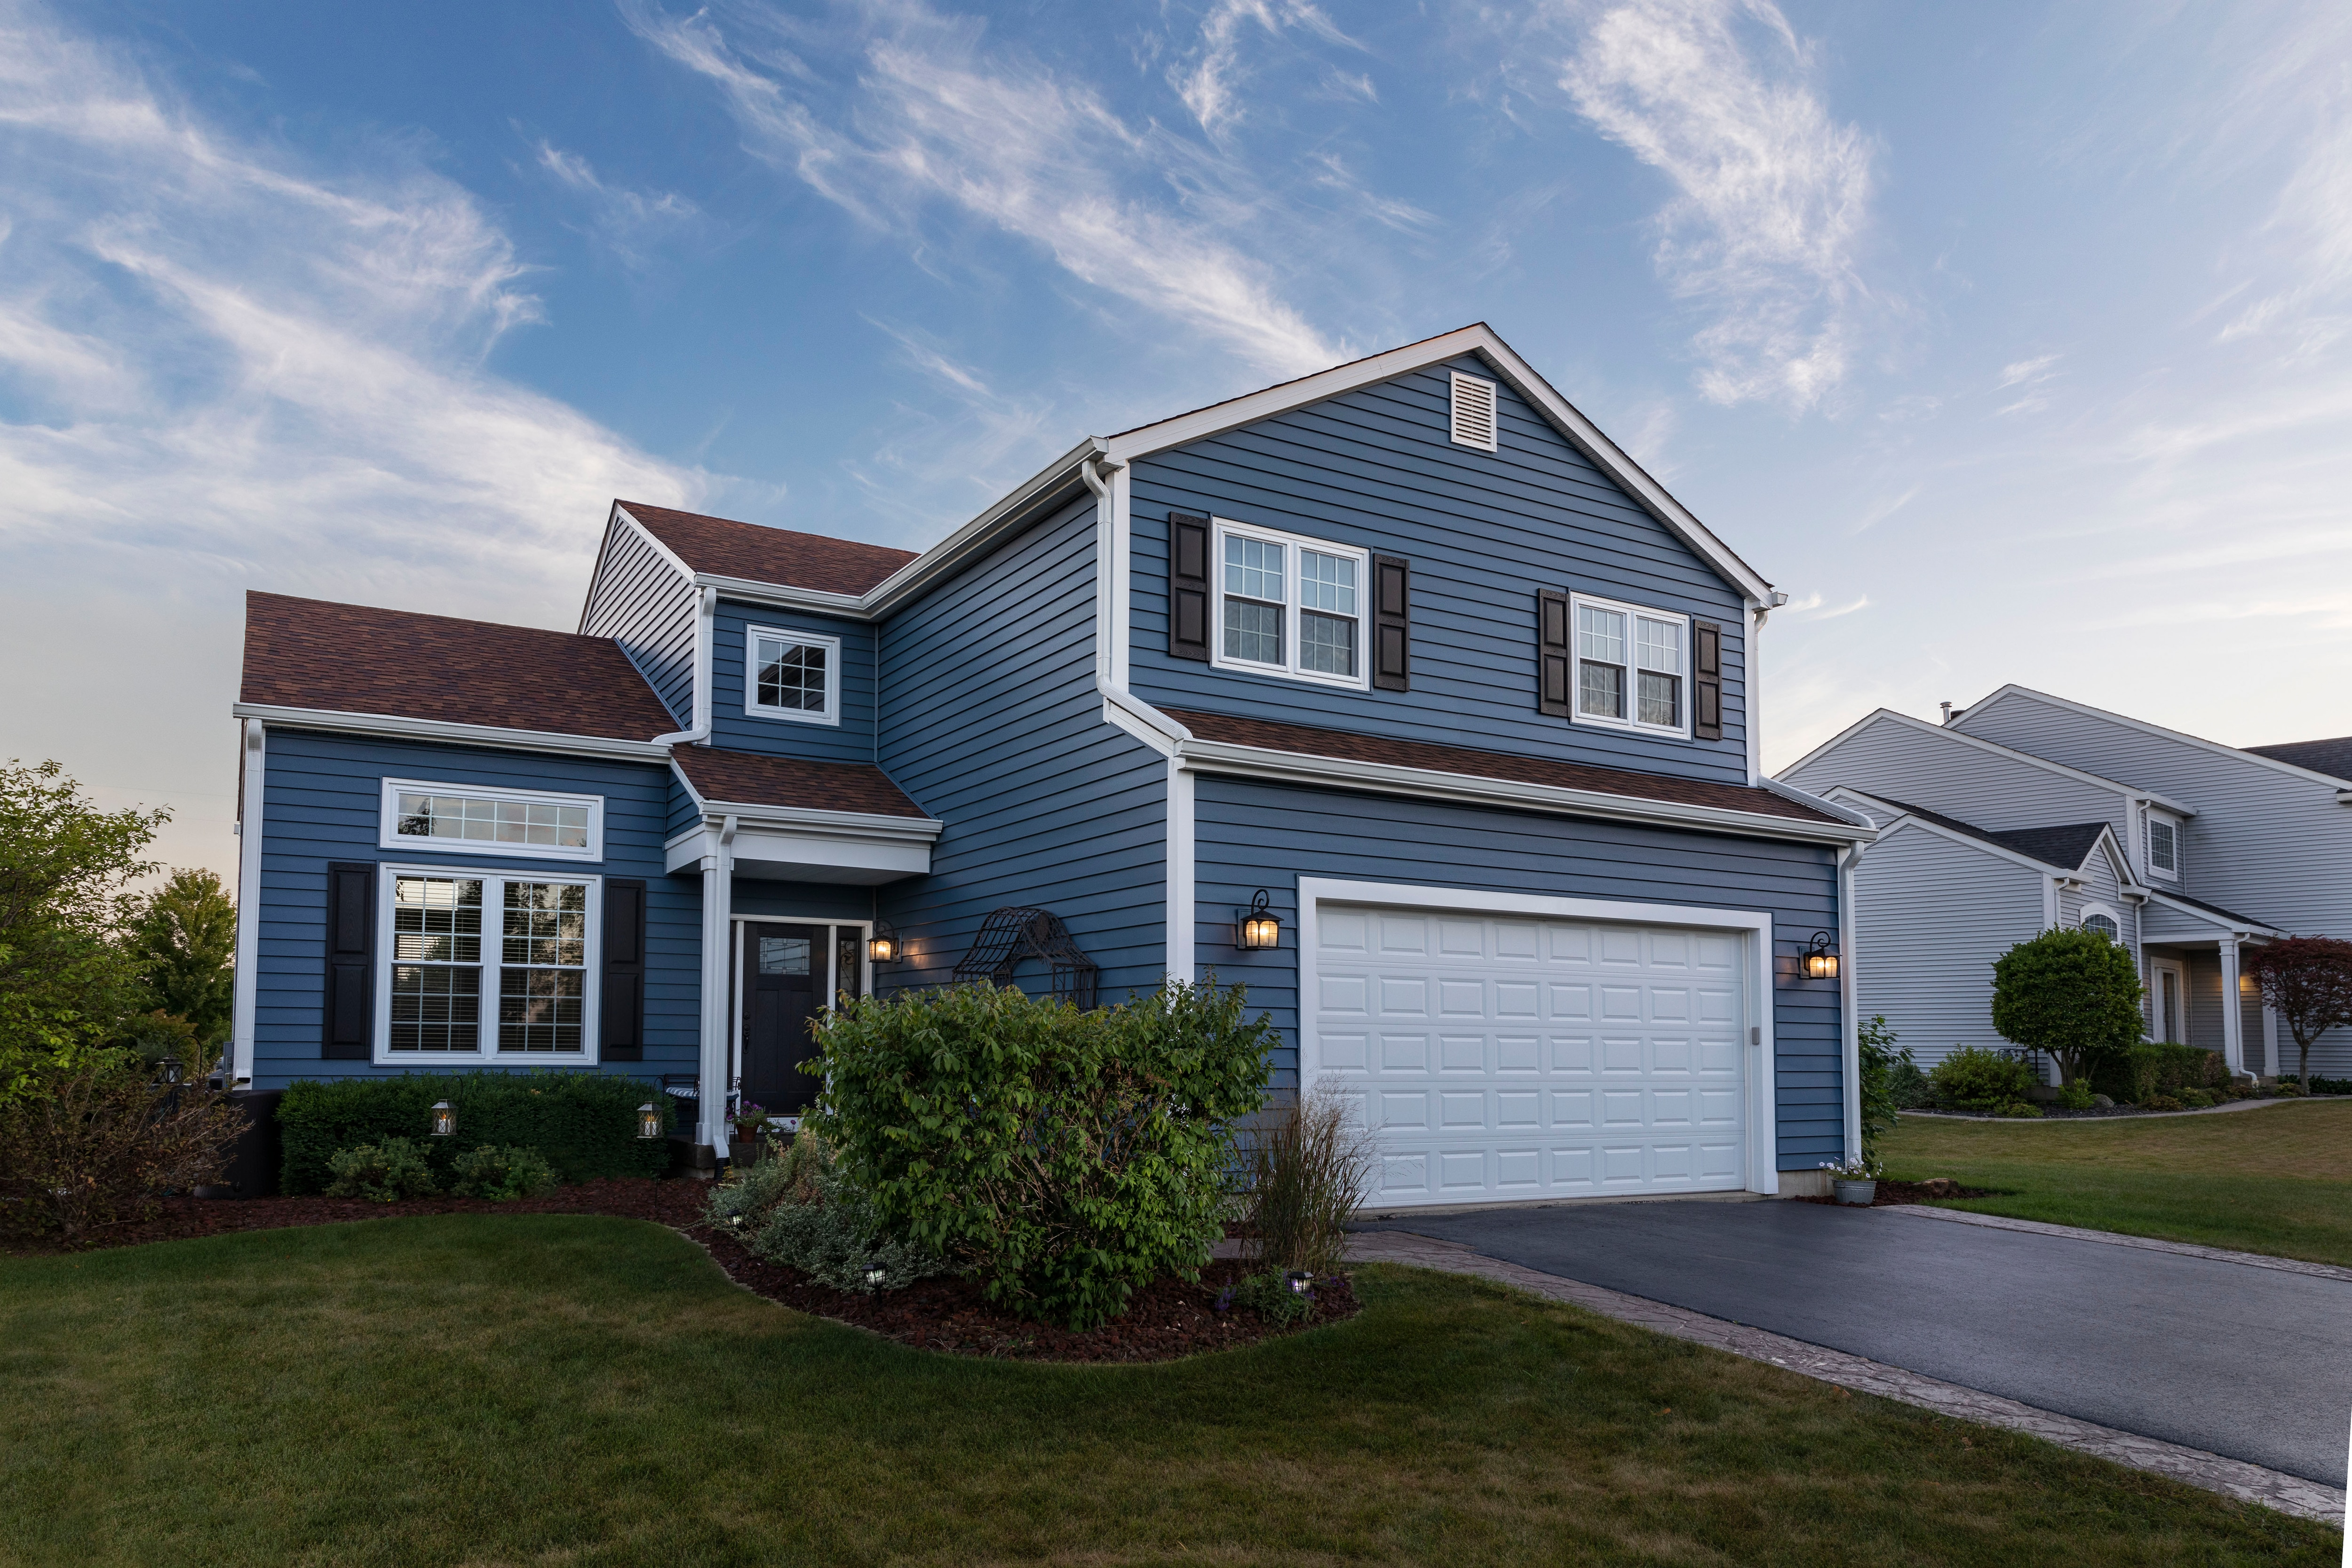 Full Home Remodel - Siding, Windows, Door and Gutters